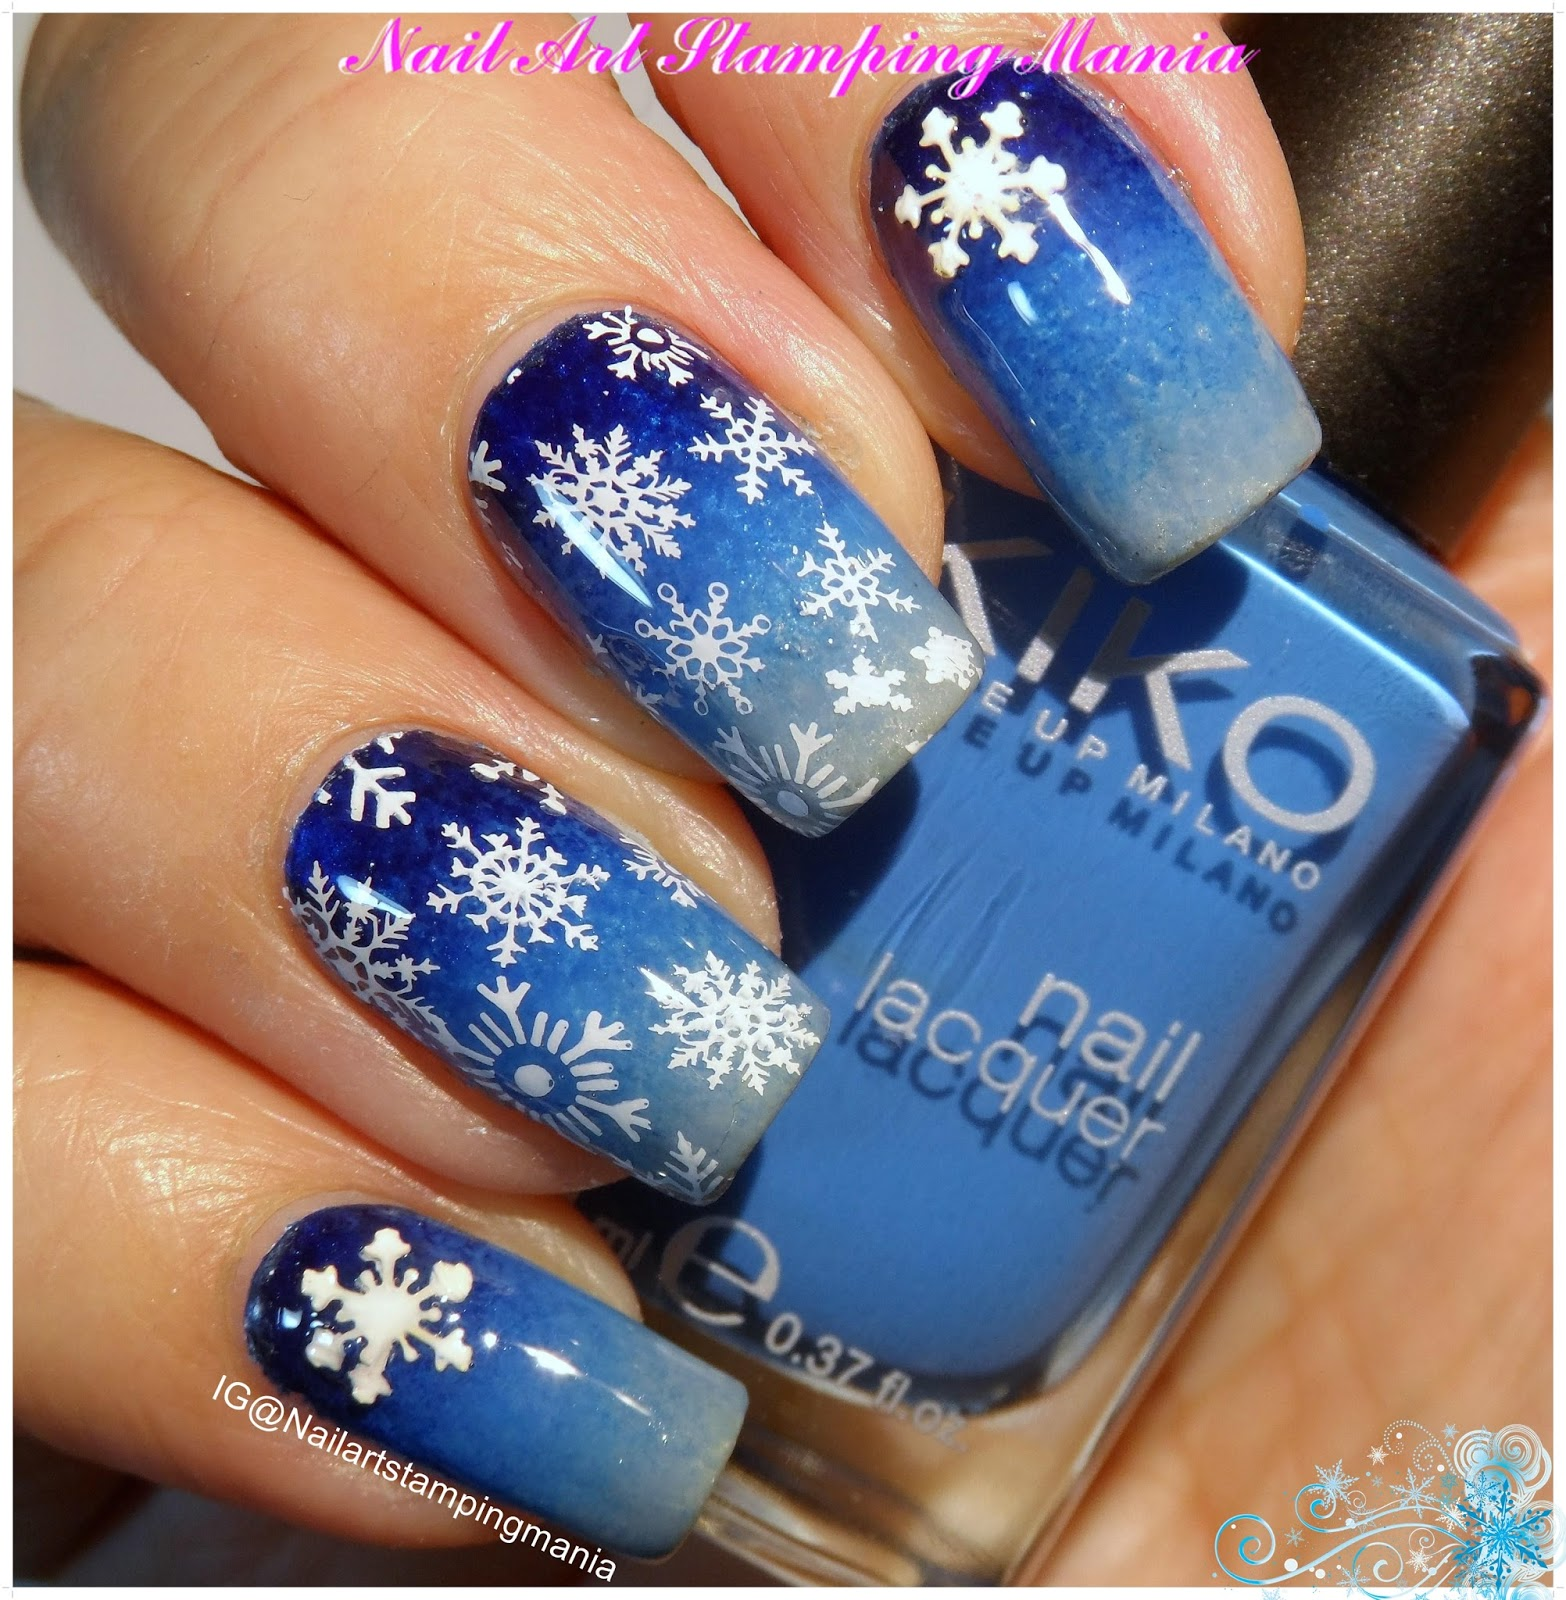 Nail Art Stamping Mania: Snowflakes Manicure with Christmas Nail Art ...